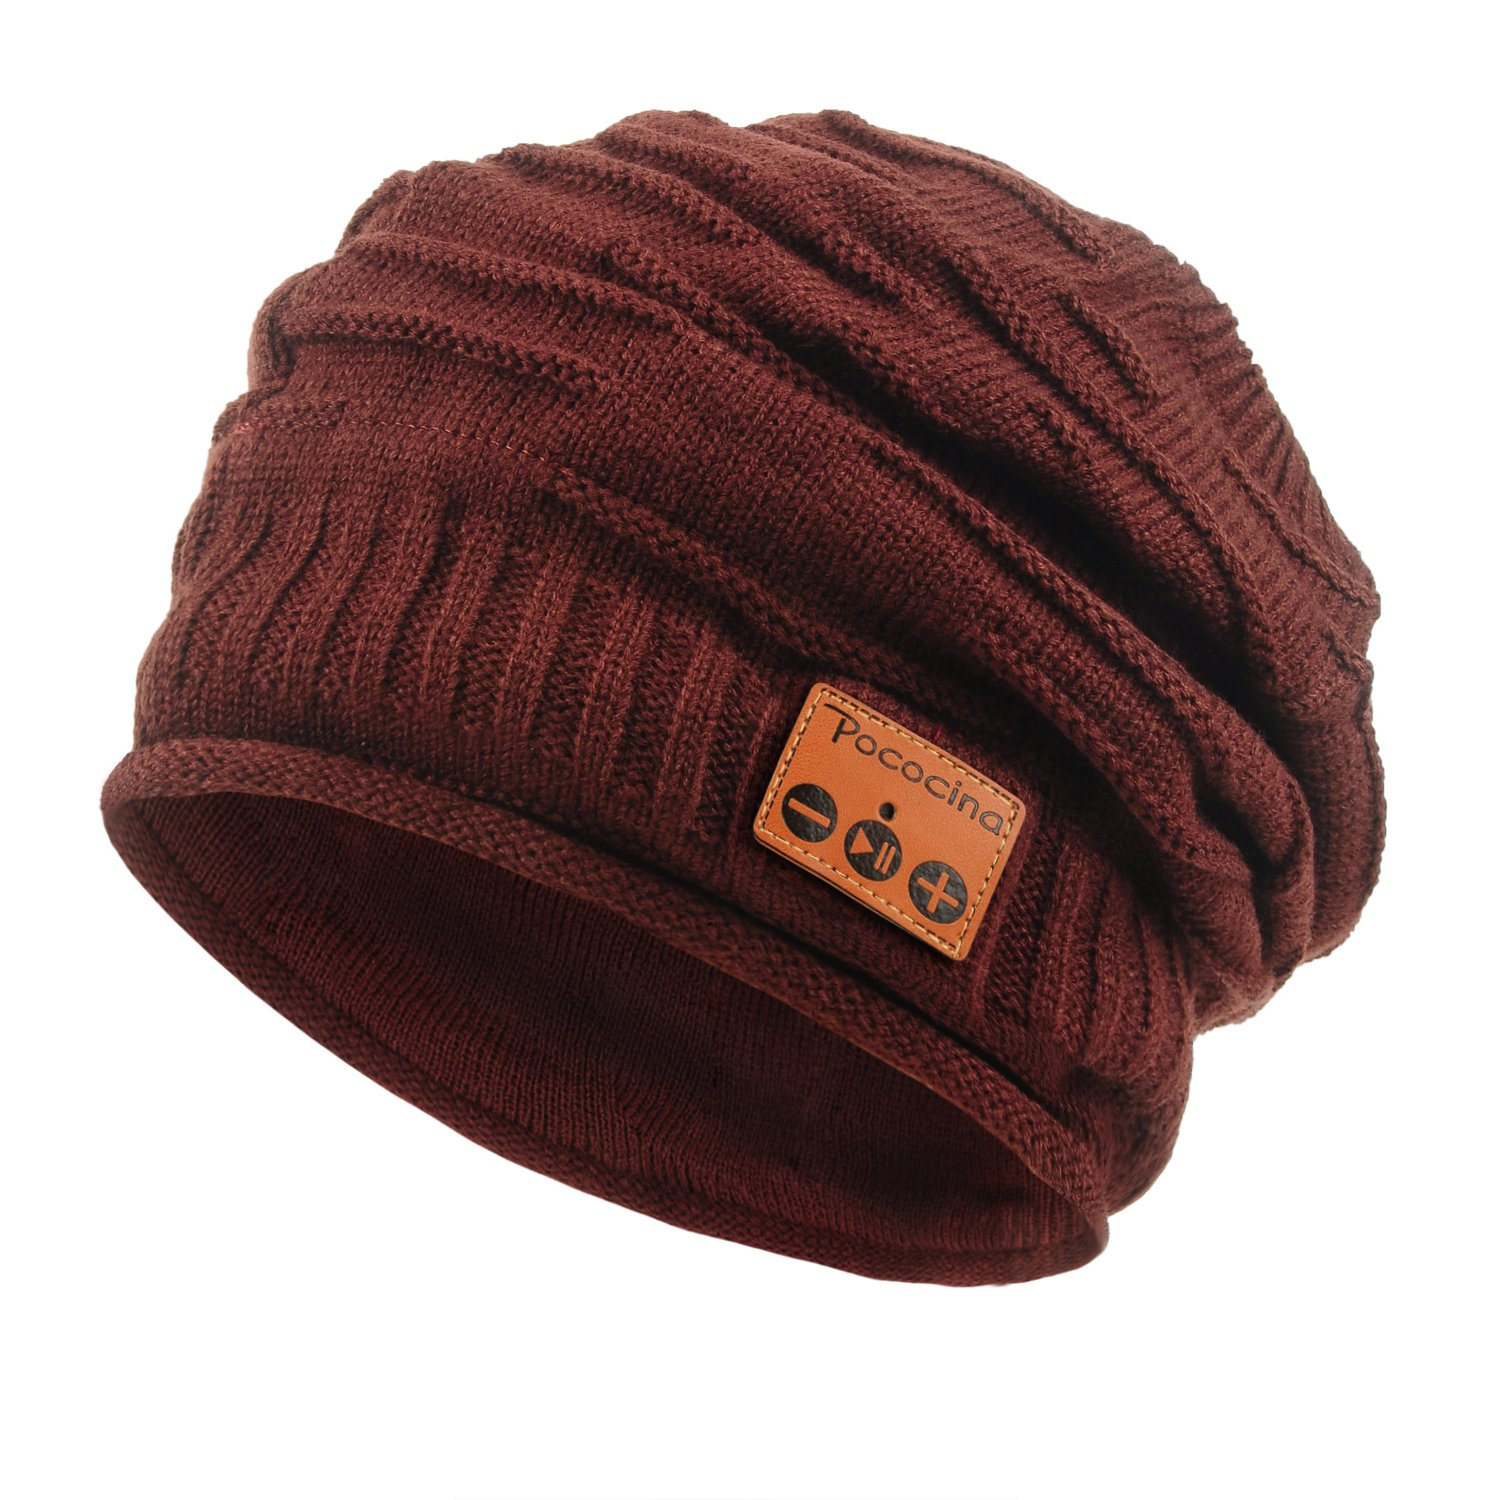 Pococina Upgraded 4.2 Bluetooth Beanie Music Hat